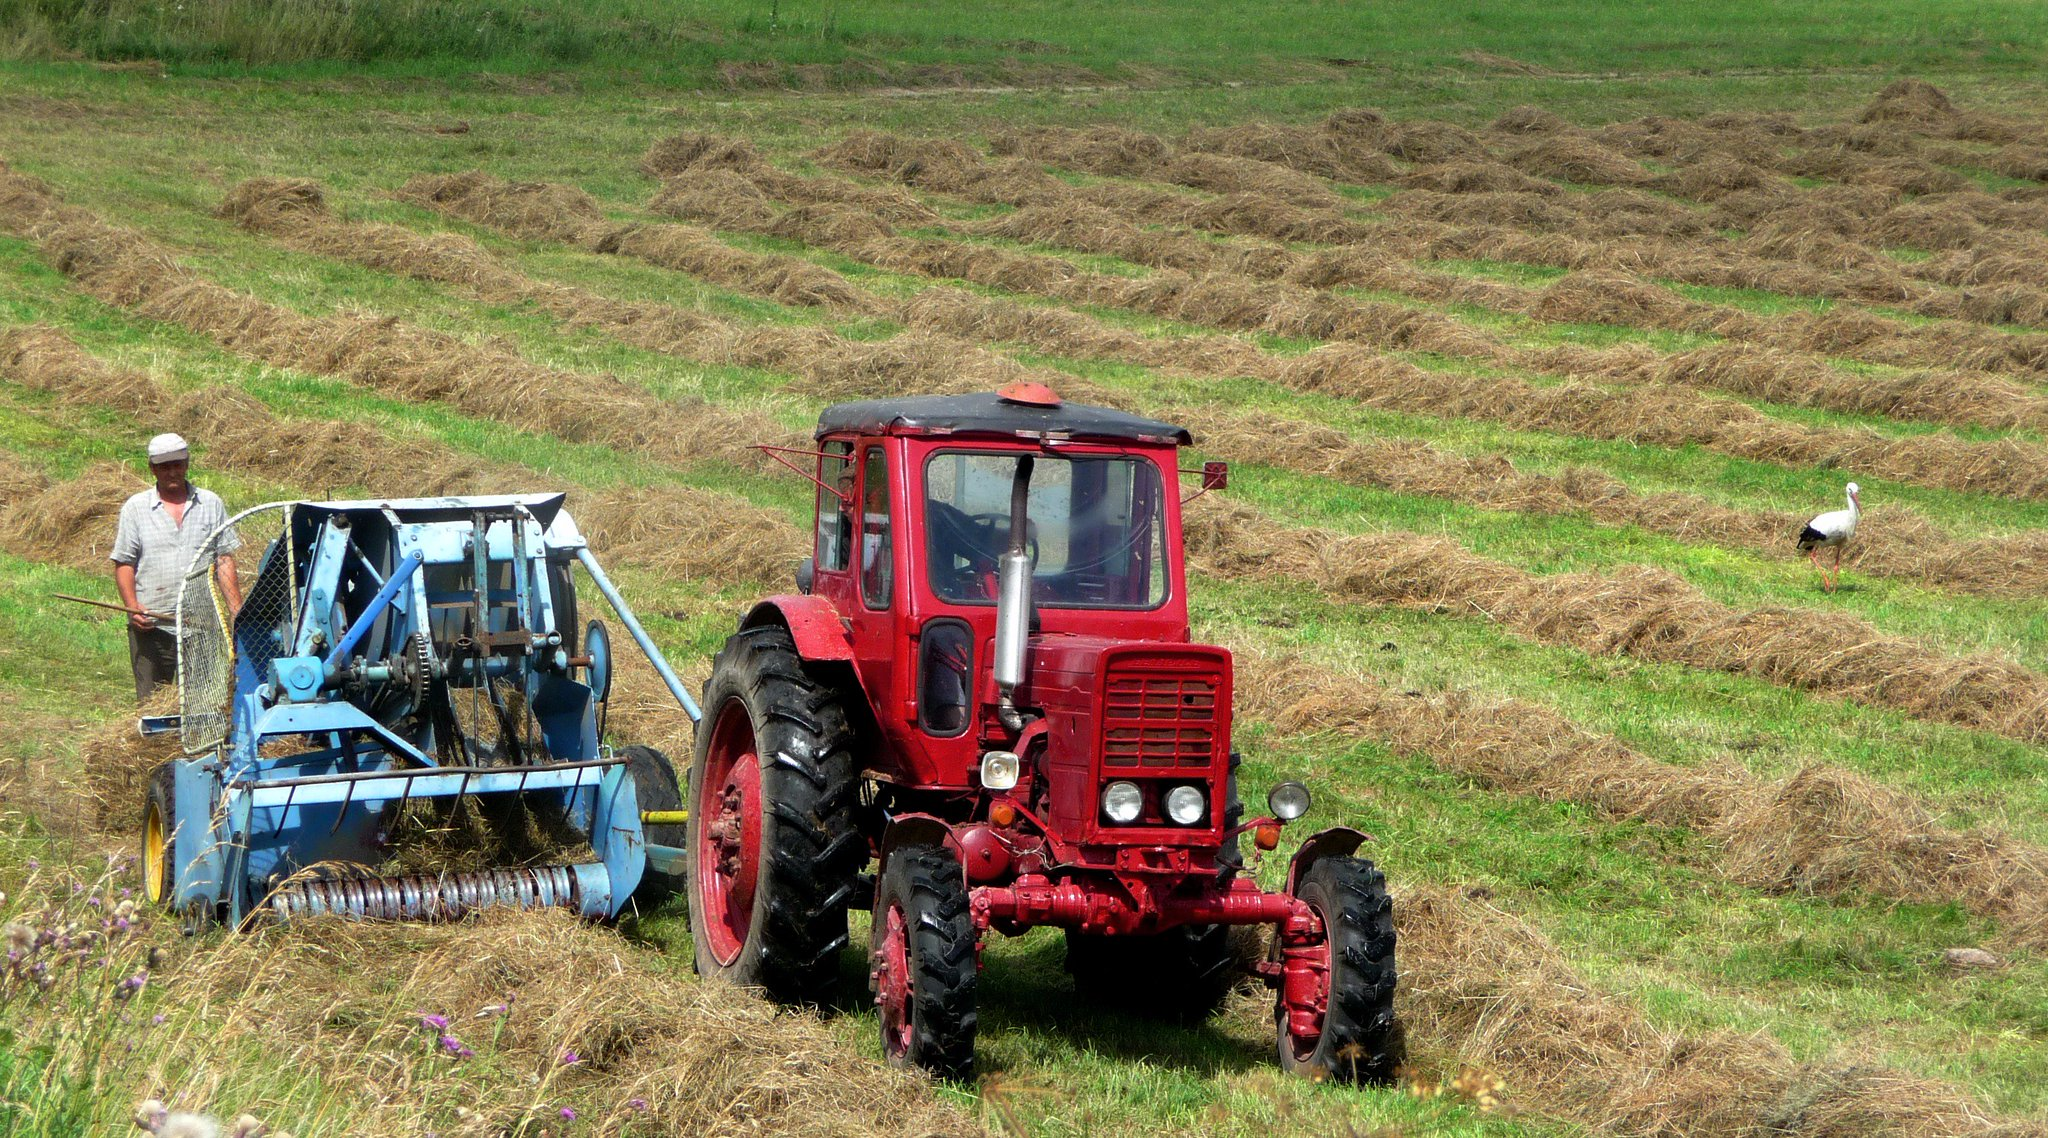 Estonian experience underlines the potential of EAFRD #financialinstruments for providing affordable finance rapidly to rural businesses https://t.co/1nfppYGaK8